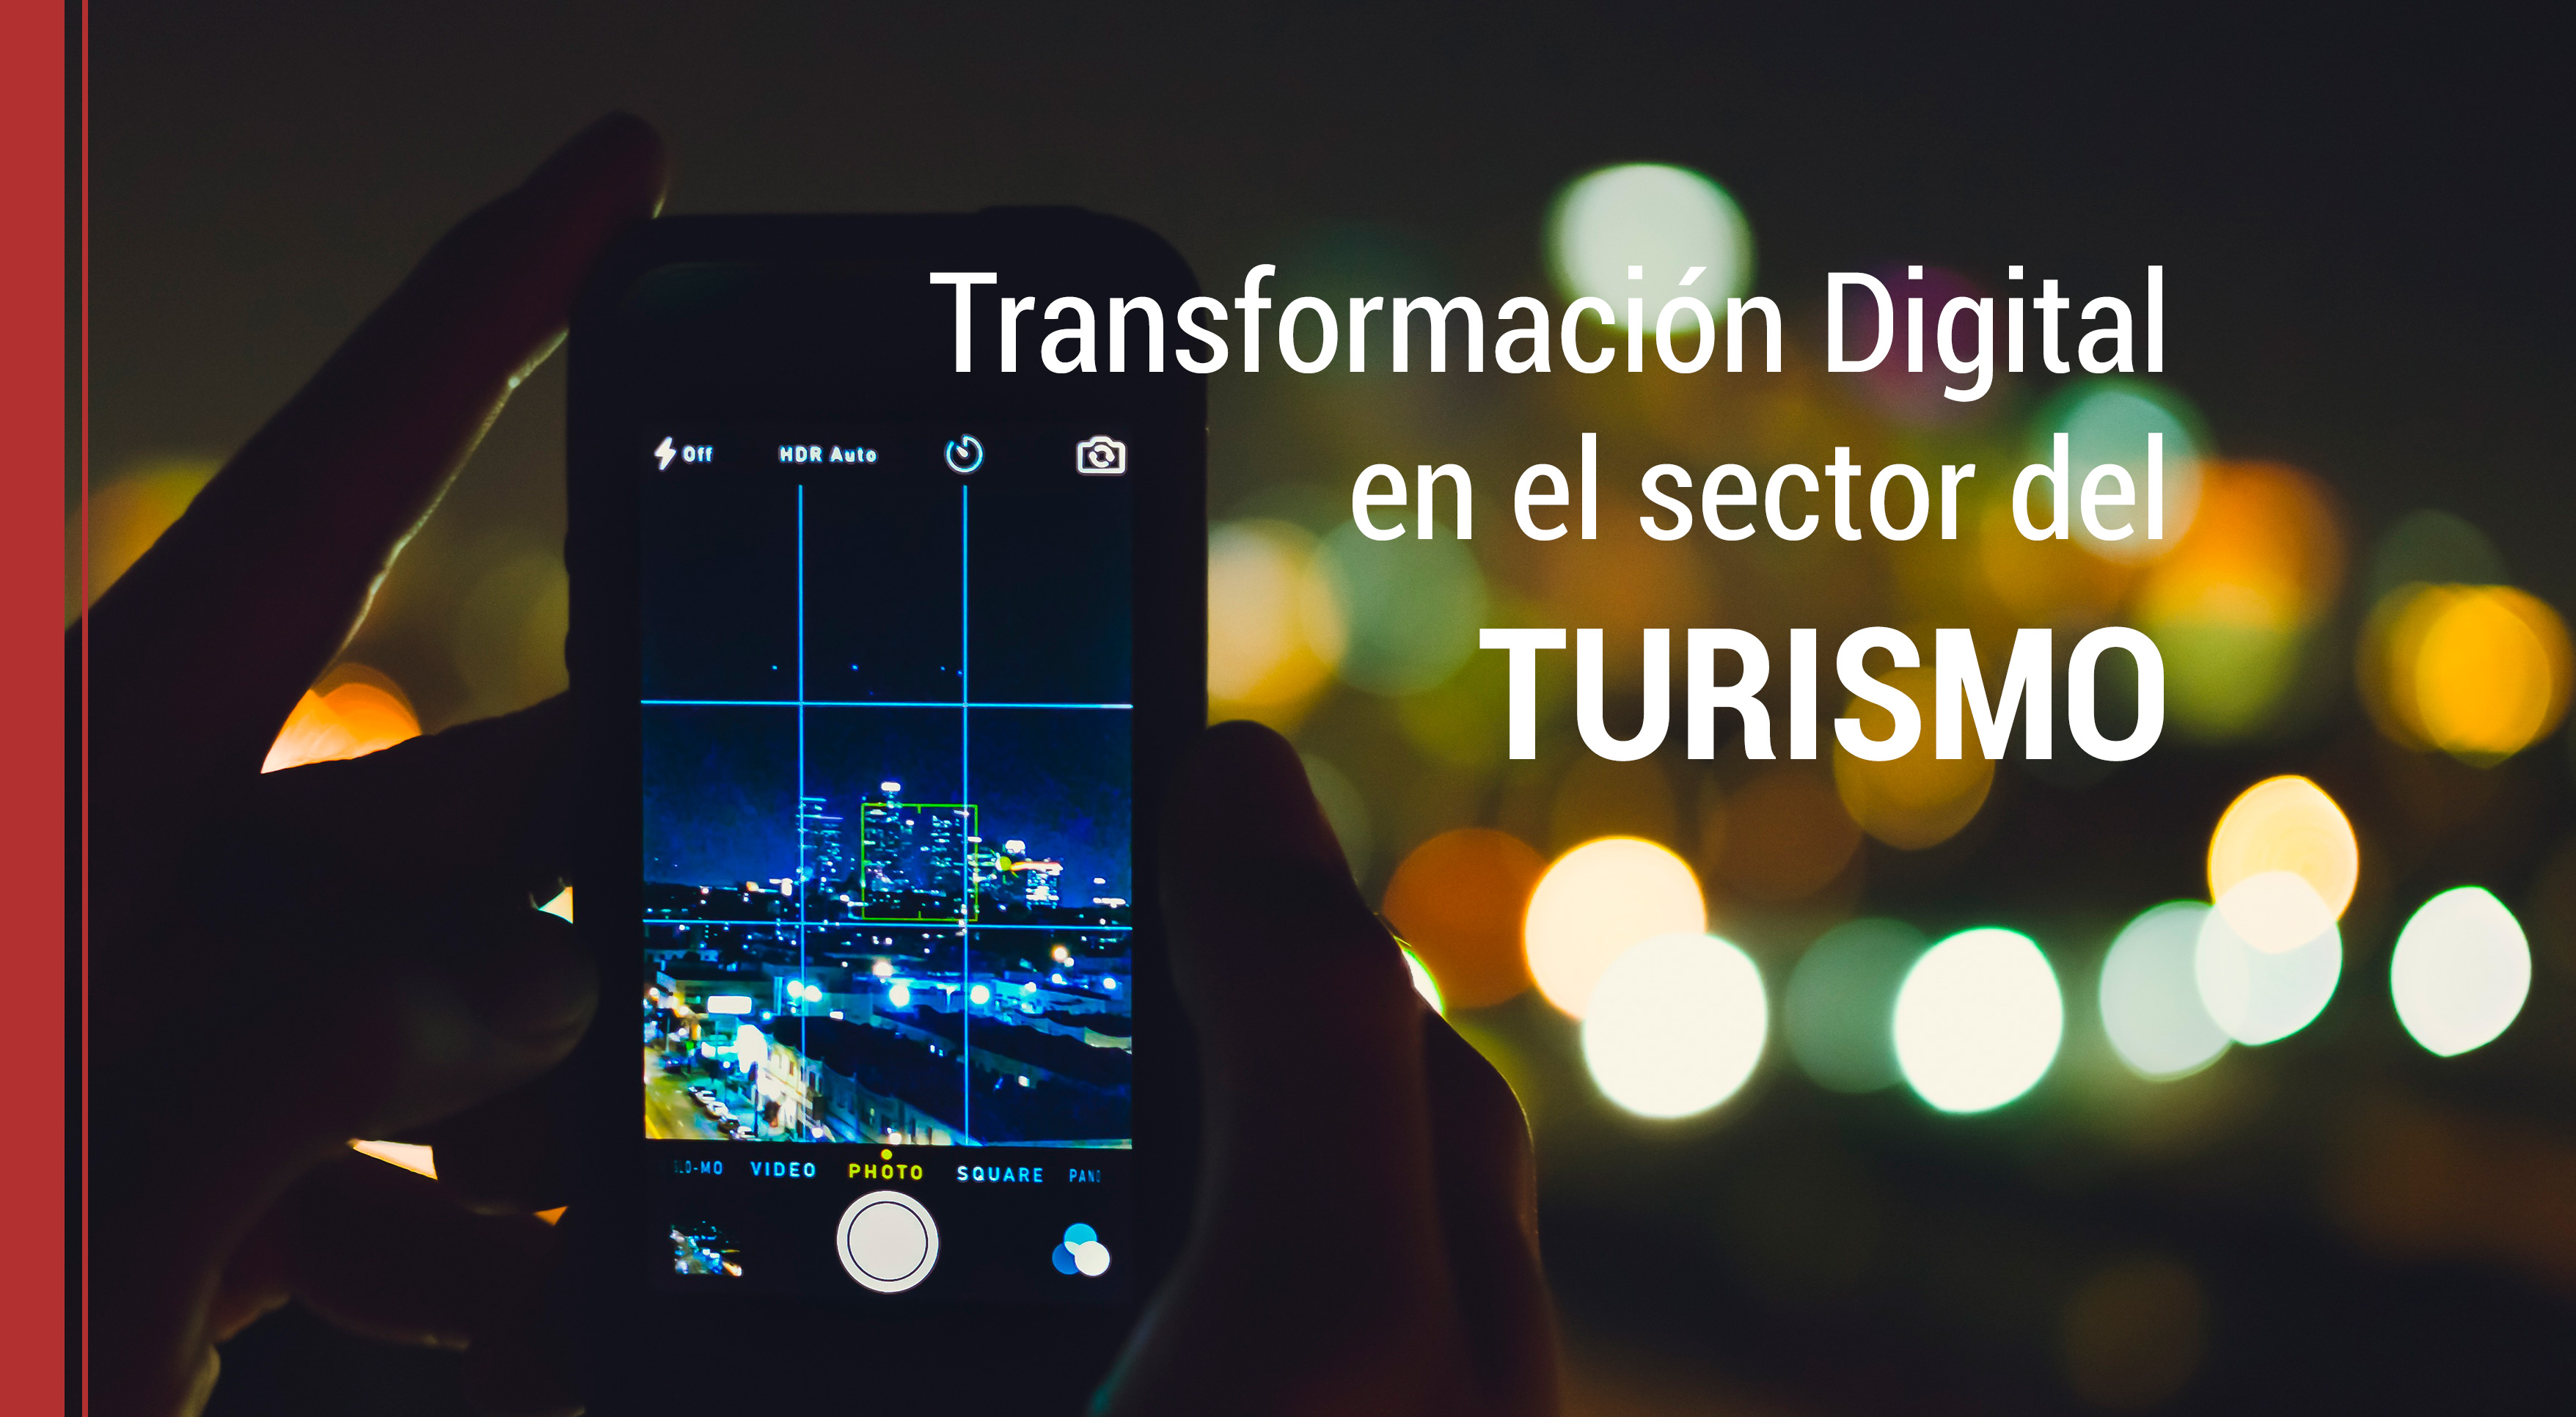 transformacion-digital-turismo Transformación Digital en el sector del turismo